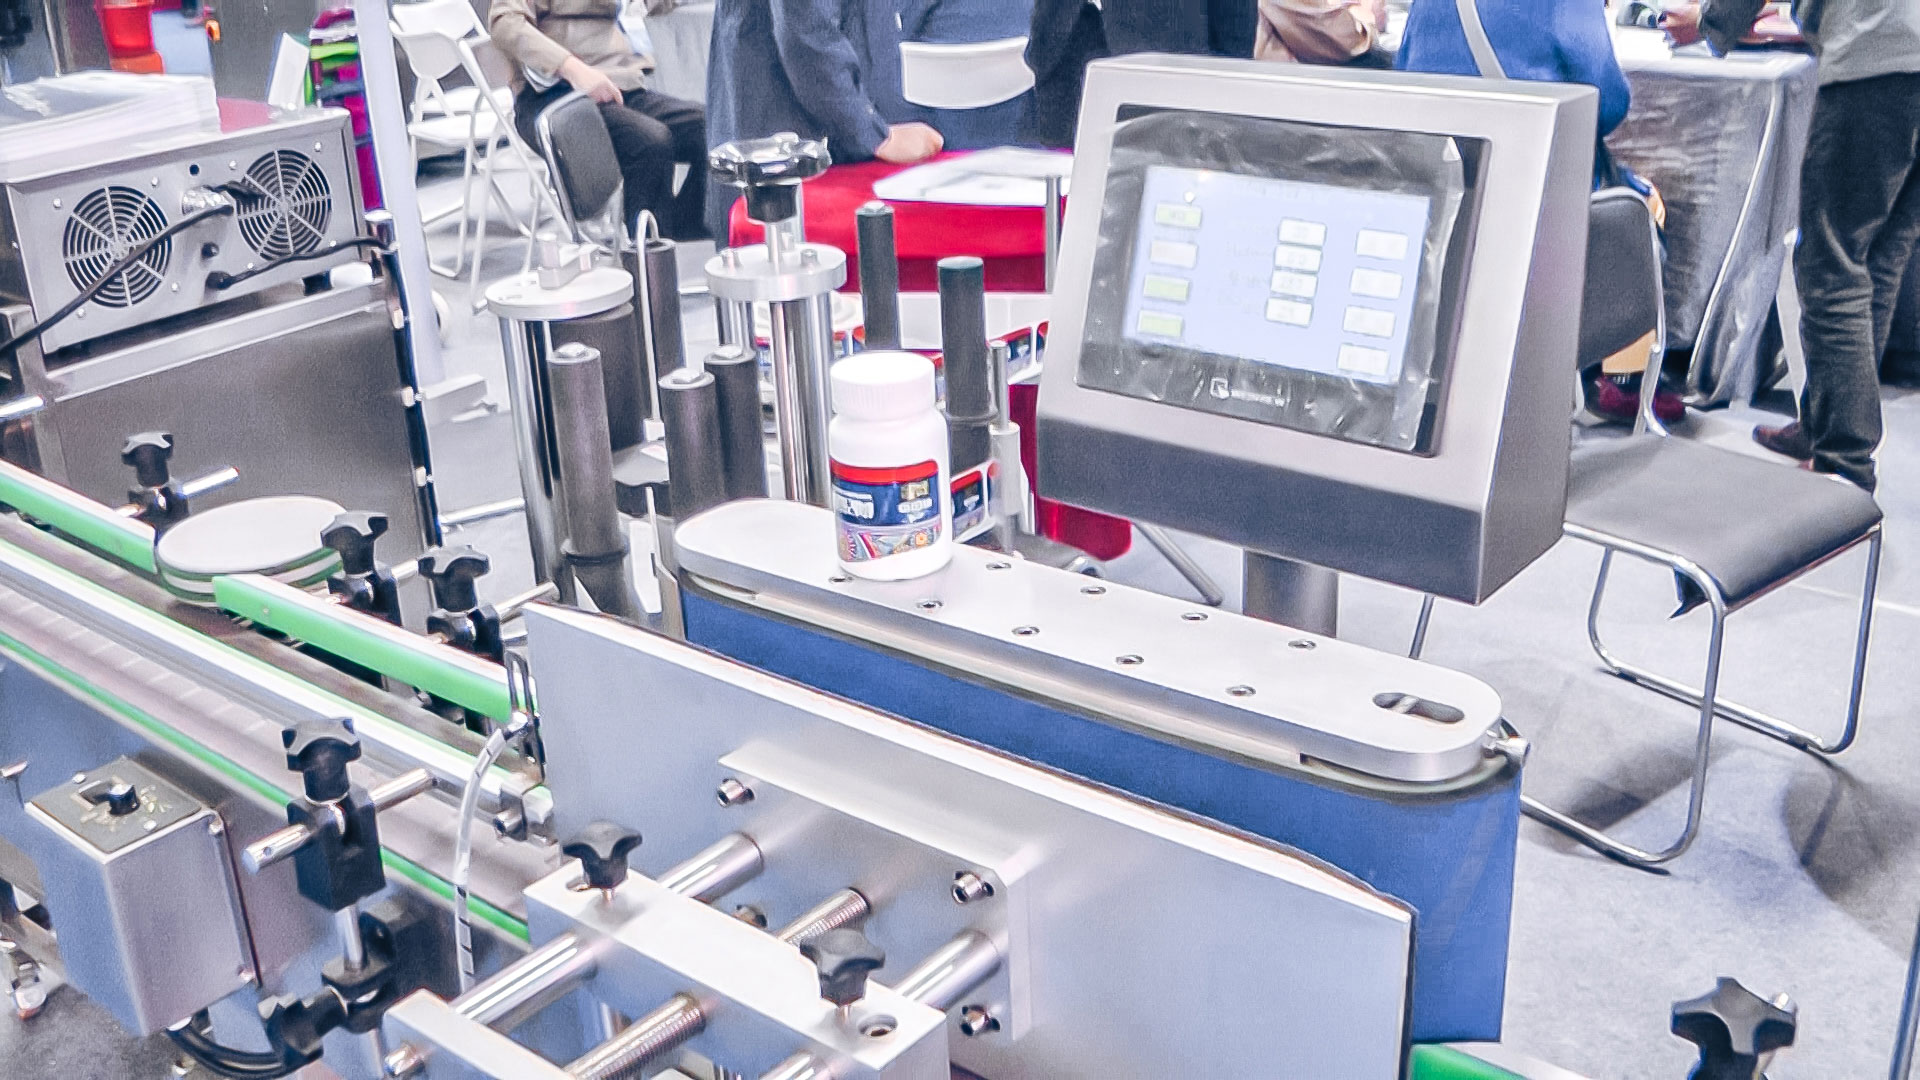 Automatic labeling equipment for plastic and glass bottles